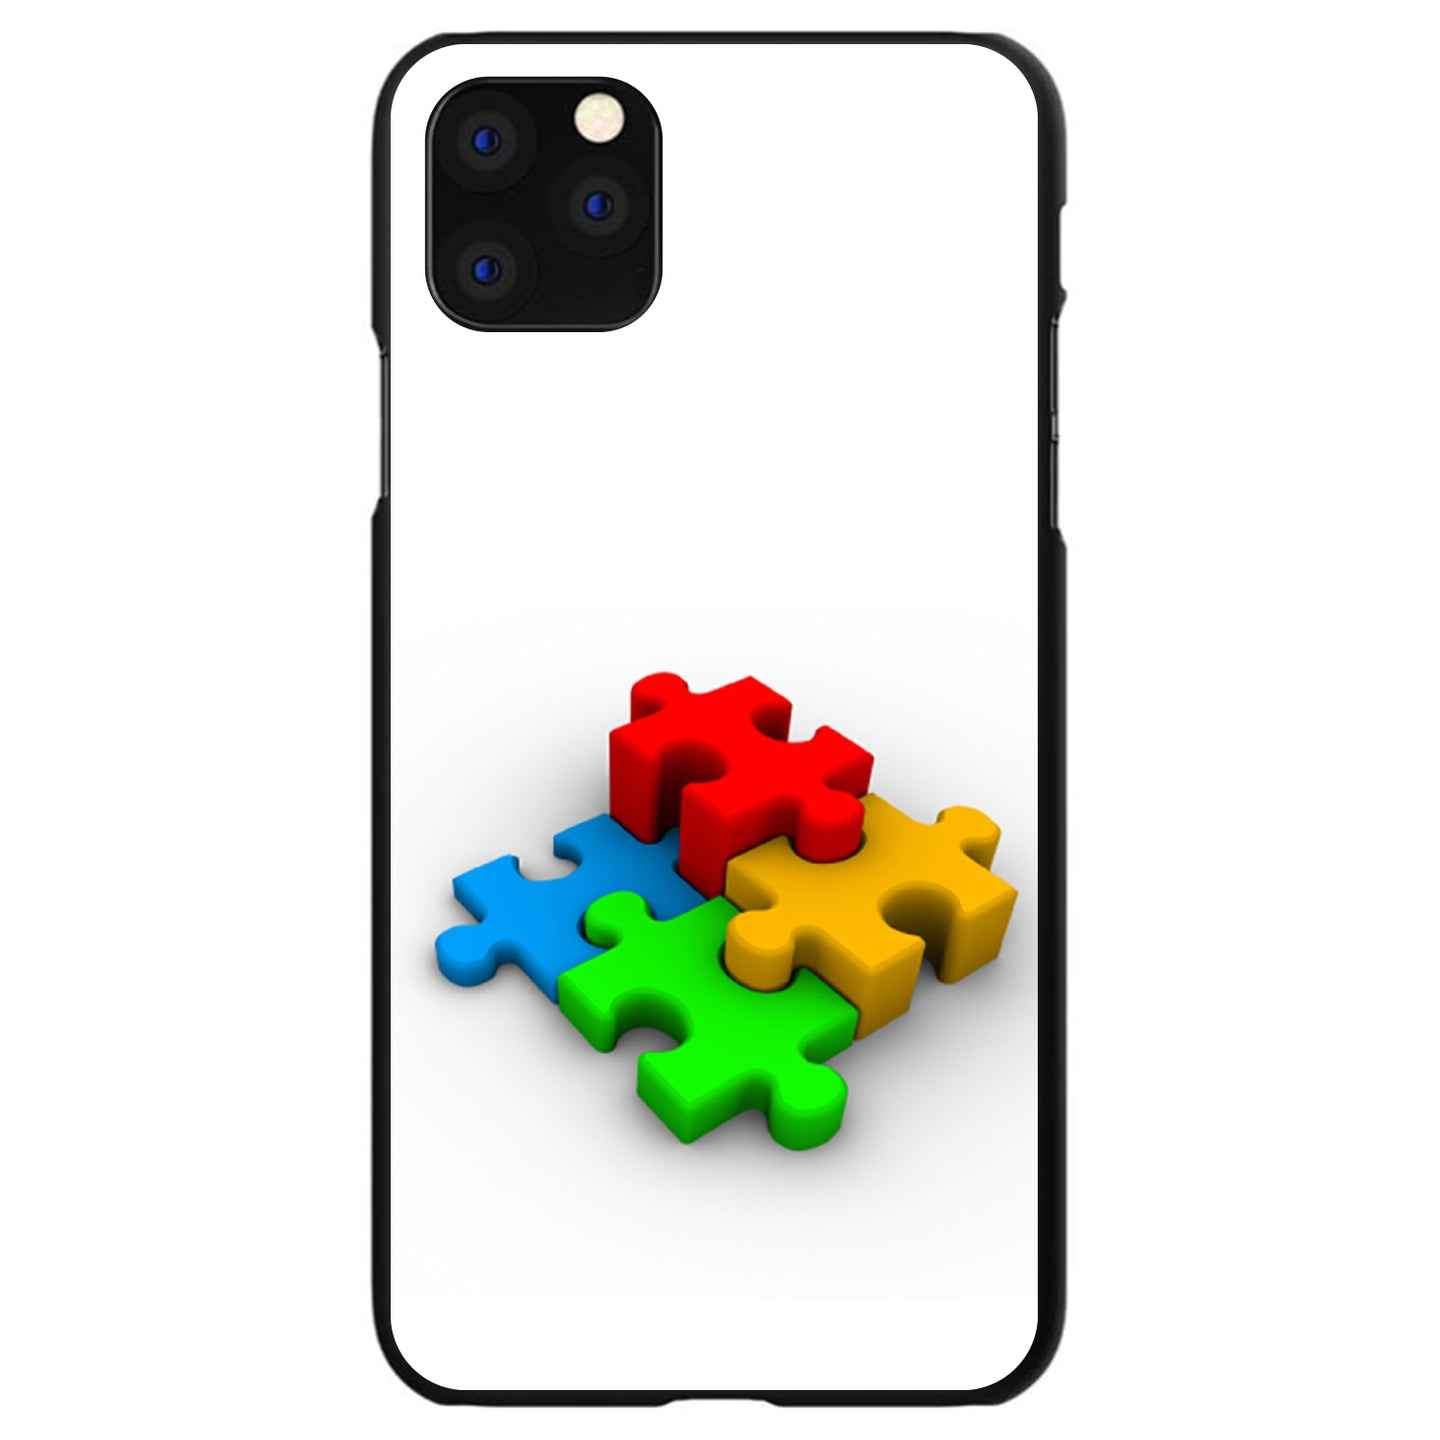 DistinctInk® Hard Plastic Snap-On Case for Apple iPhone - Red Blue Yellow 3D Puzzle Pieces